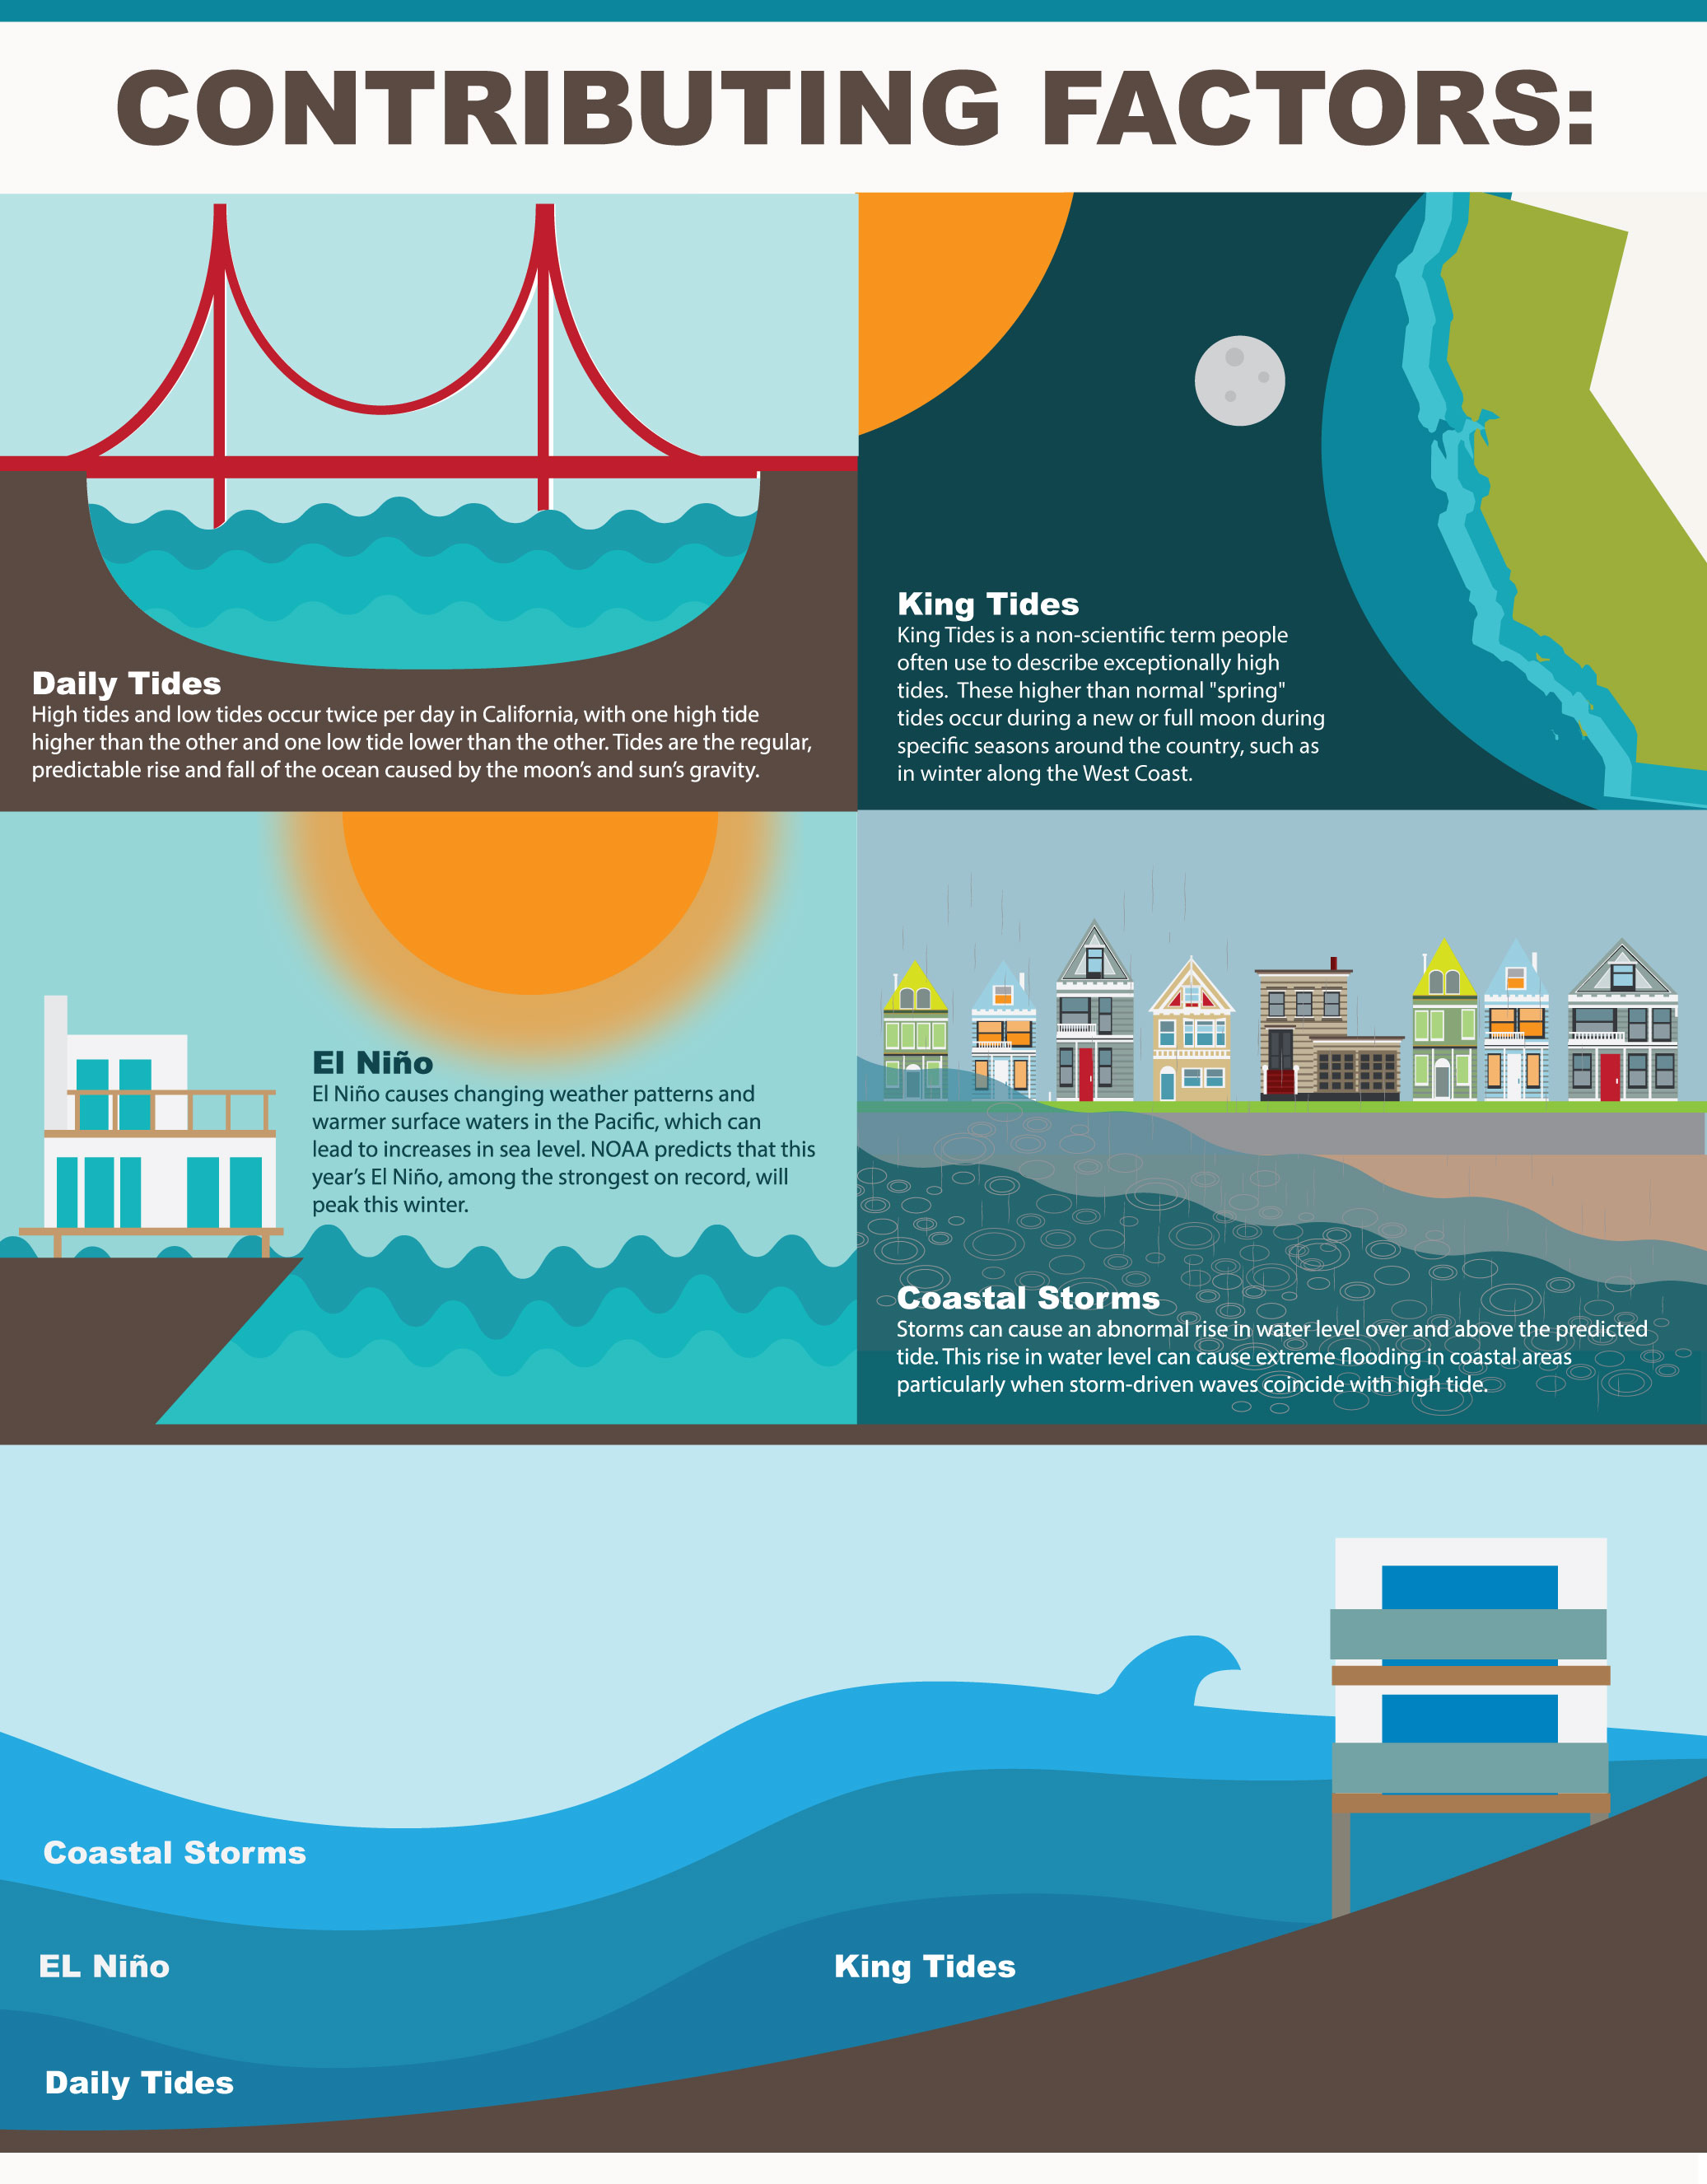 Graphic illustrating contributing factors to nuisance flooding in California: high tides, including daily tides, perigean spring tides, El Niño, and storm surge